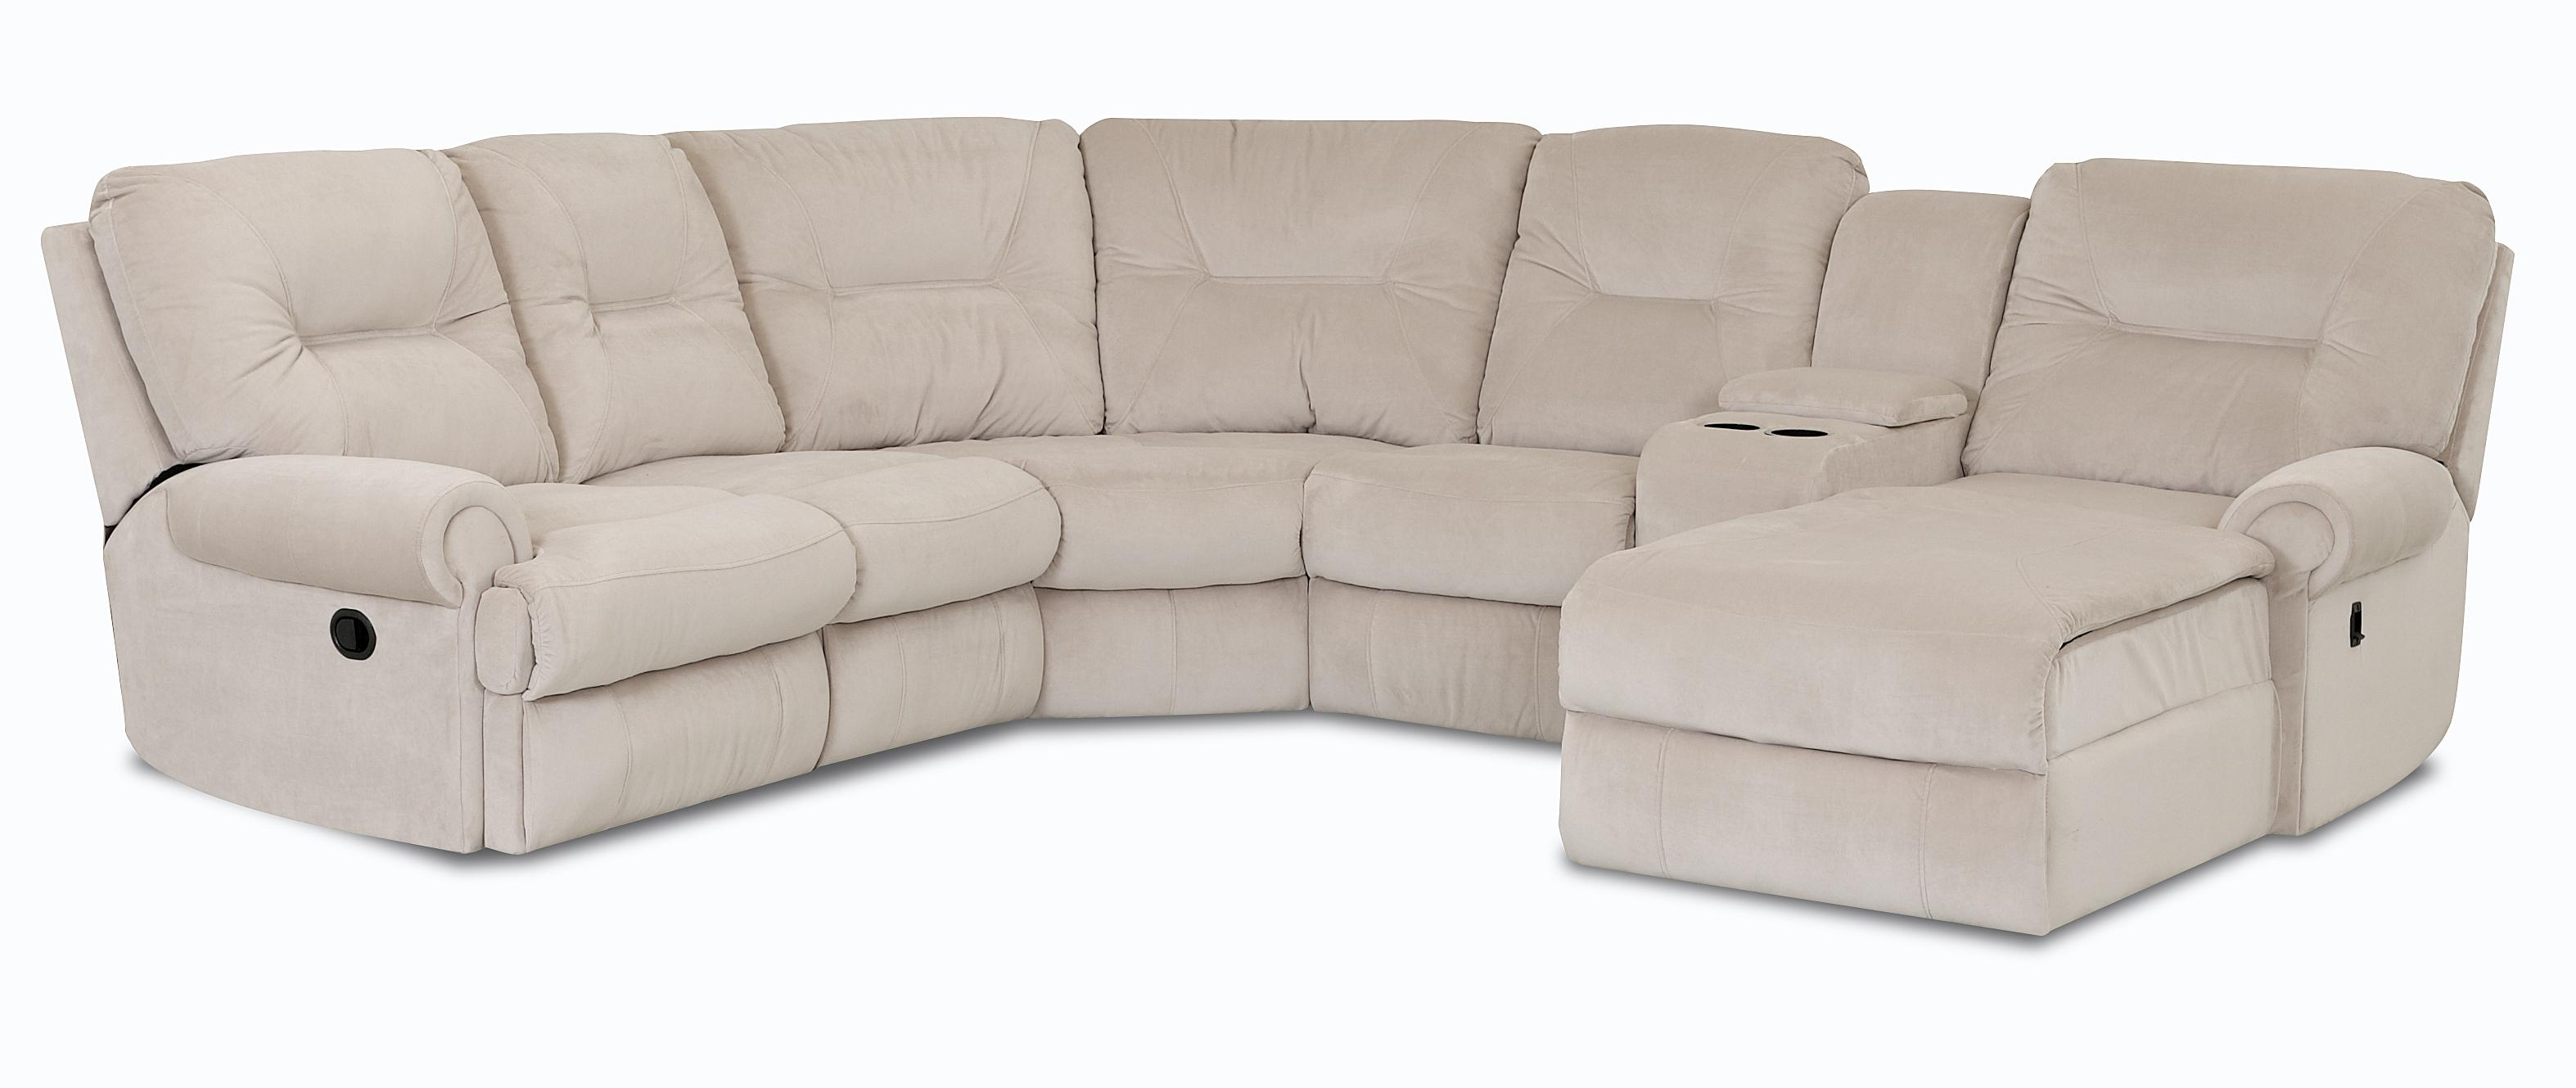 Roadster Traditional Reclining Sectional Sofa by Klaussner at Johnny Janosik